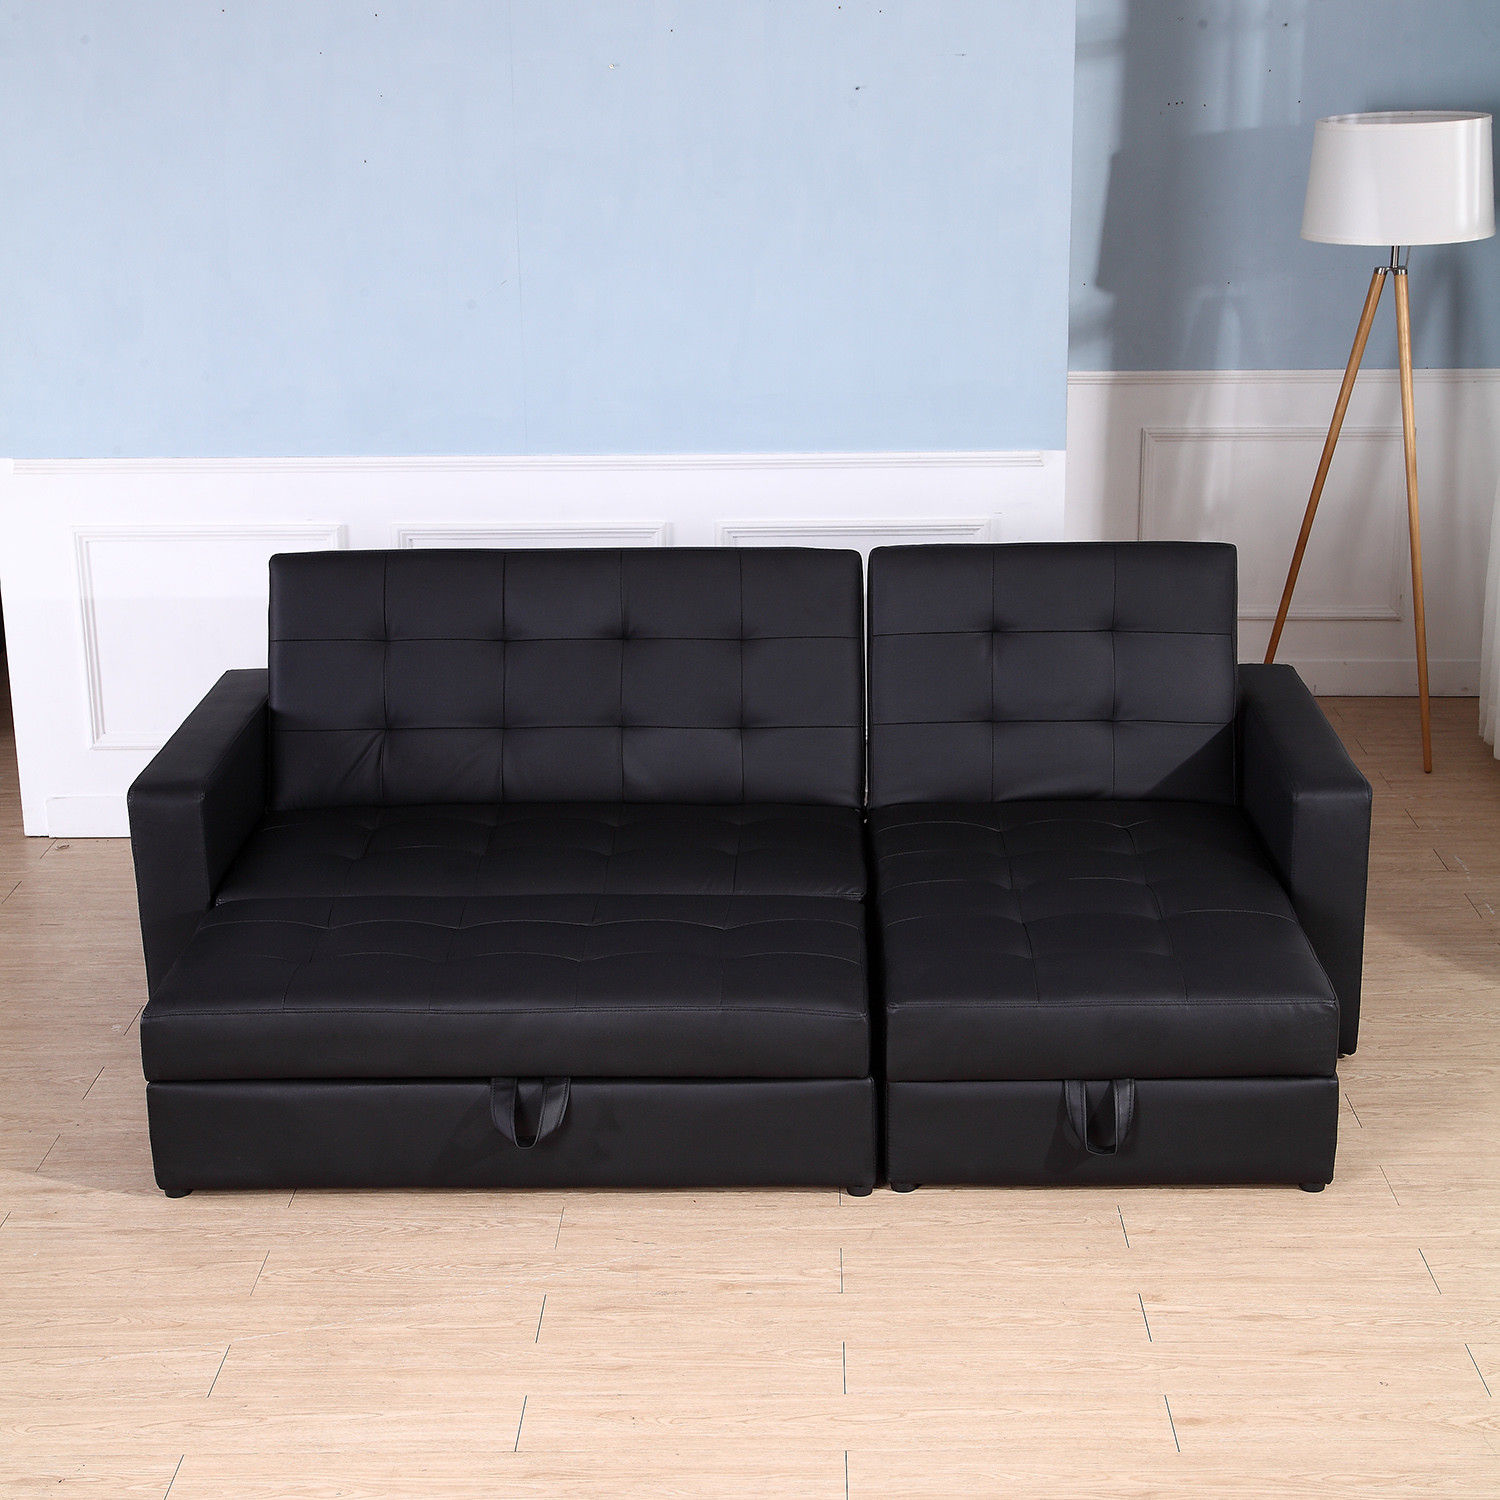 Sofa Sleeper Chaise: Sofa Bed Storage Sleeper Chaise Loveseat Couch Sectional